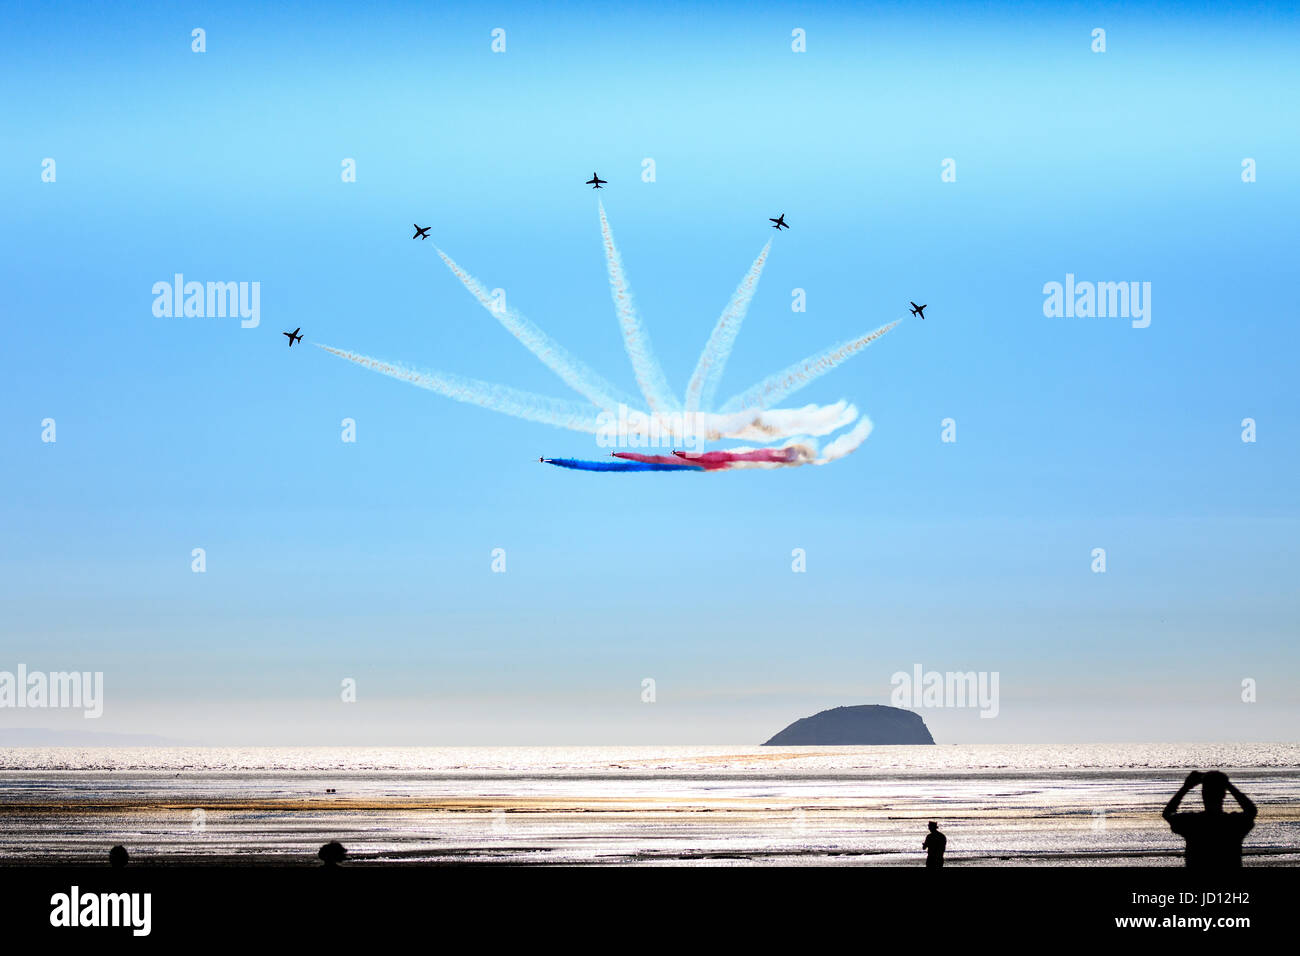 Weston-Super-Mare, England, UK. 17th June, 2017. People watching RAF Red Arrows fan out in formation over Weston Stock Photo